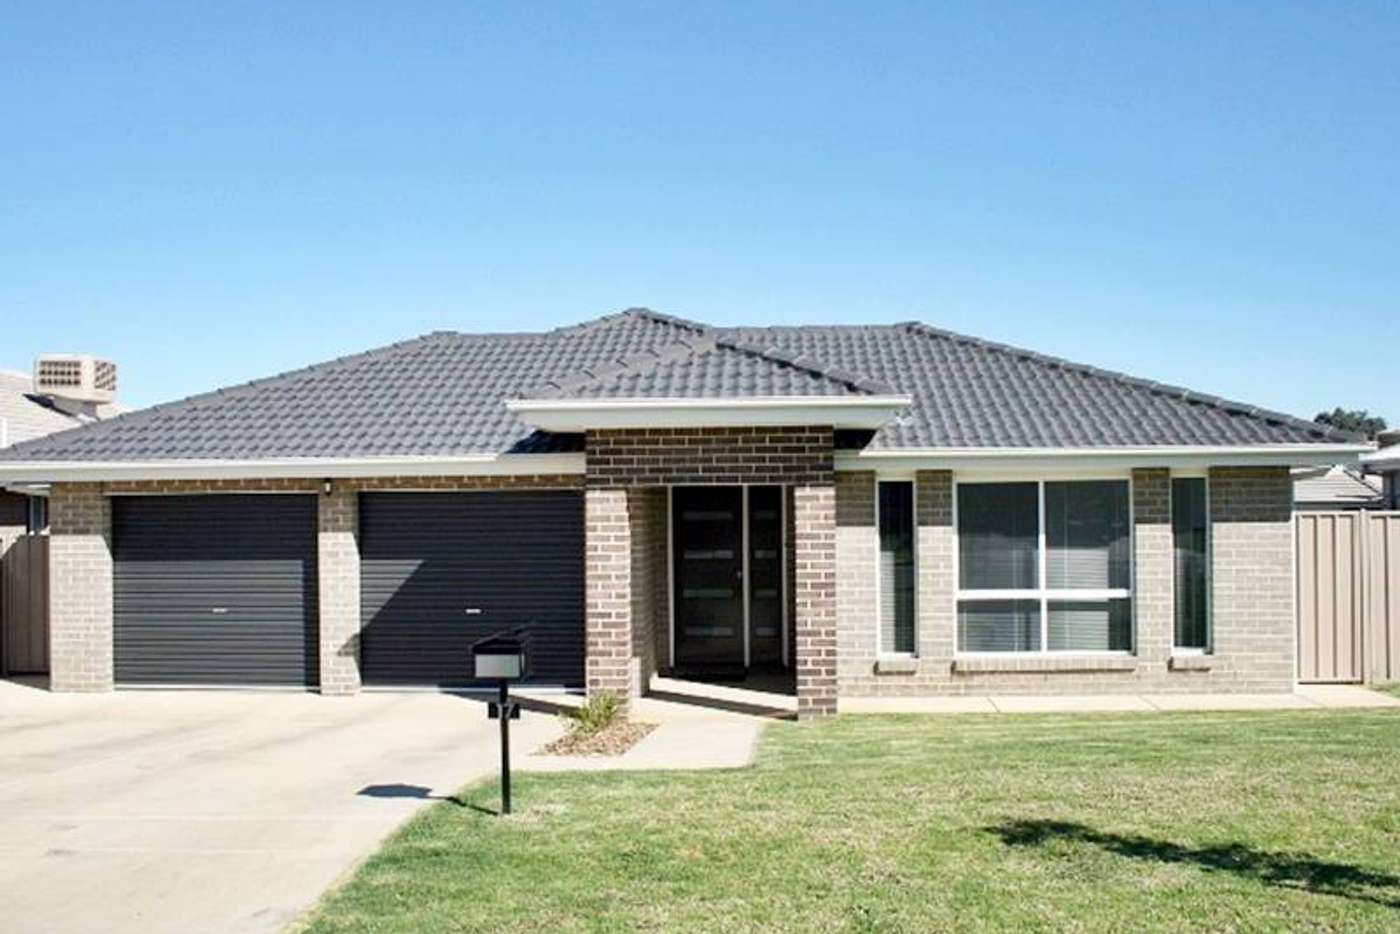 Main view of Homely house listing, 17 Mirrul Street, Glenfield Park NSW 2650